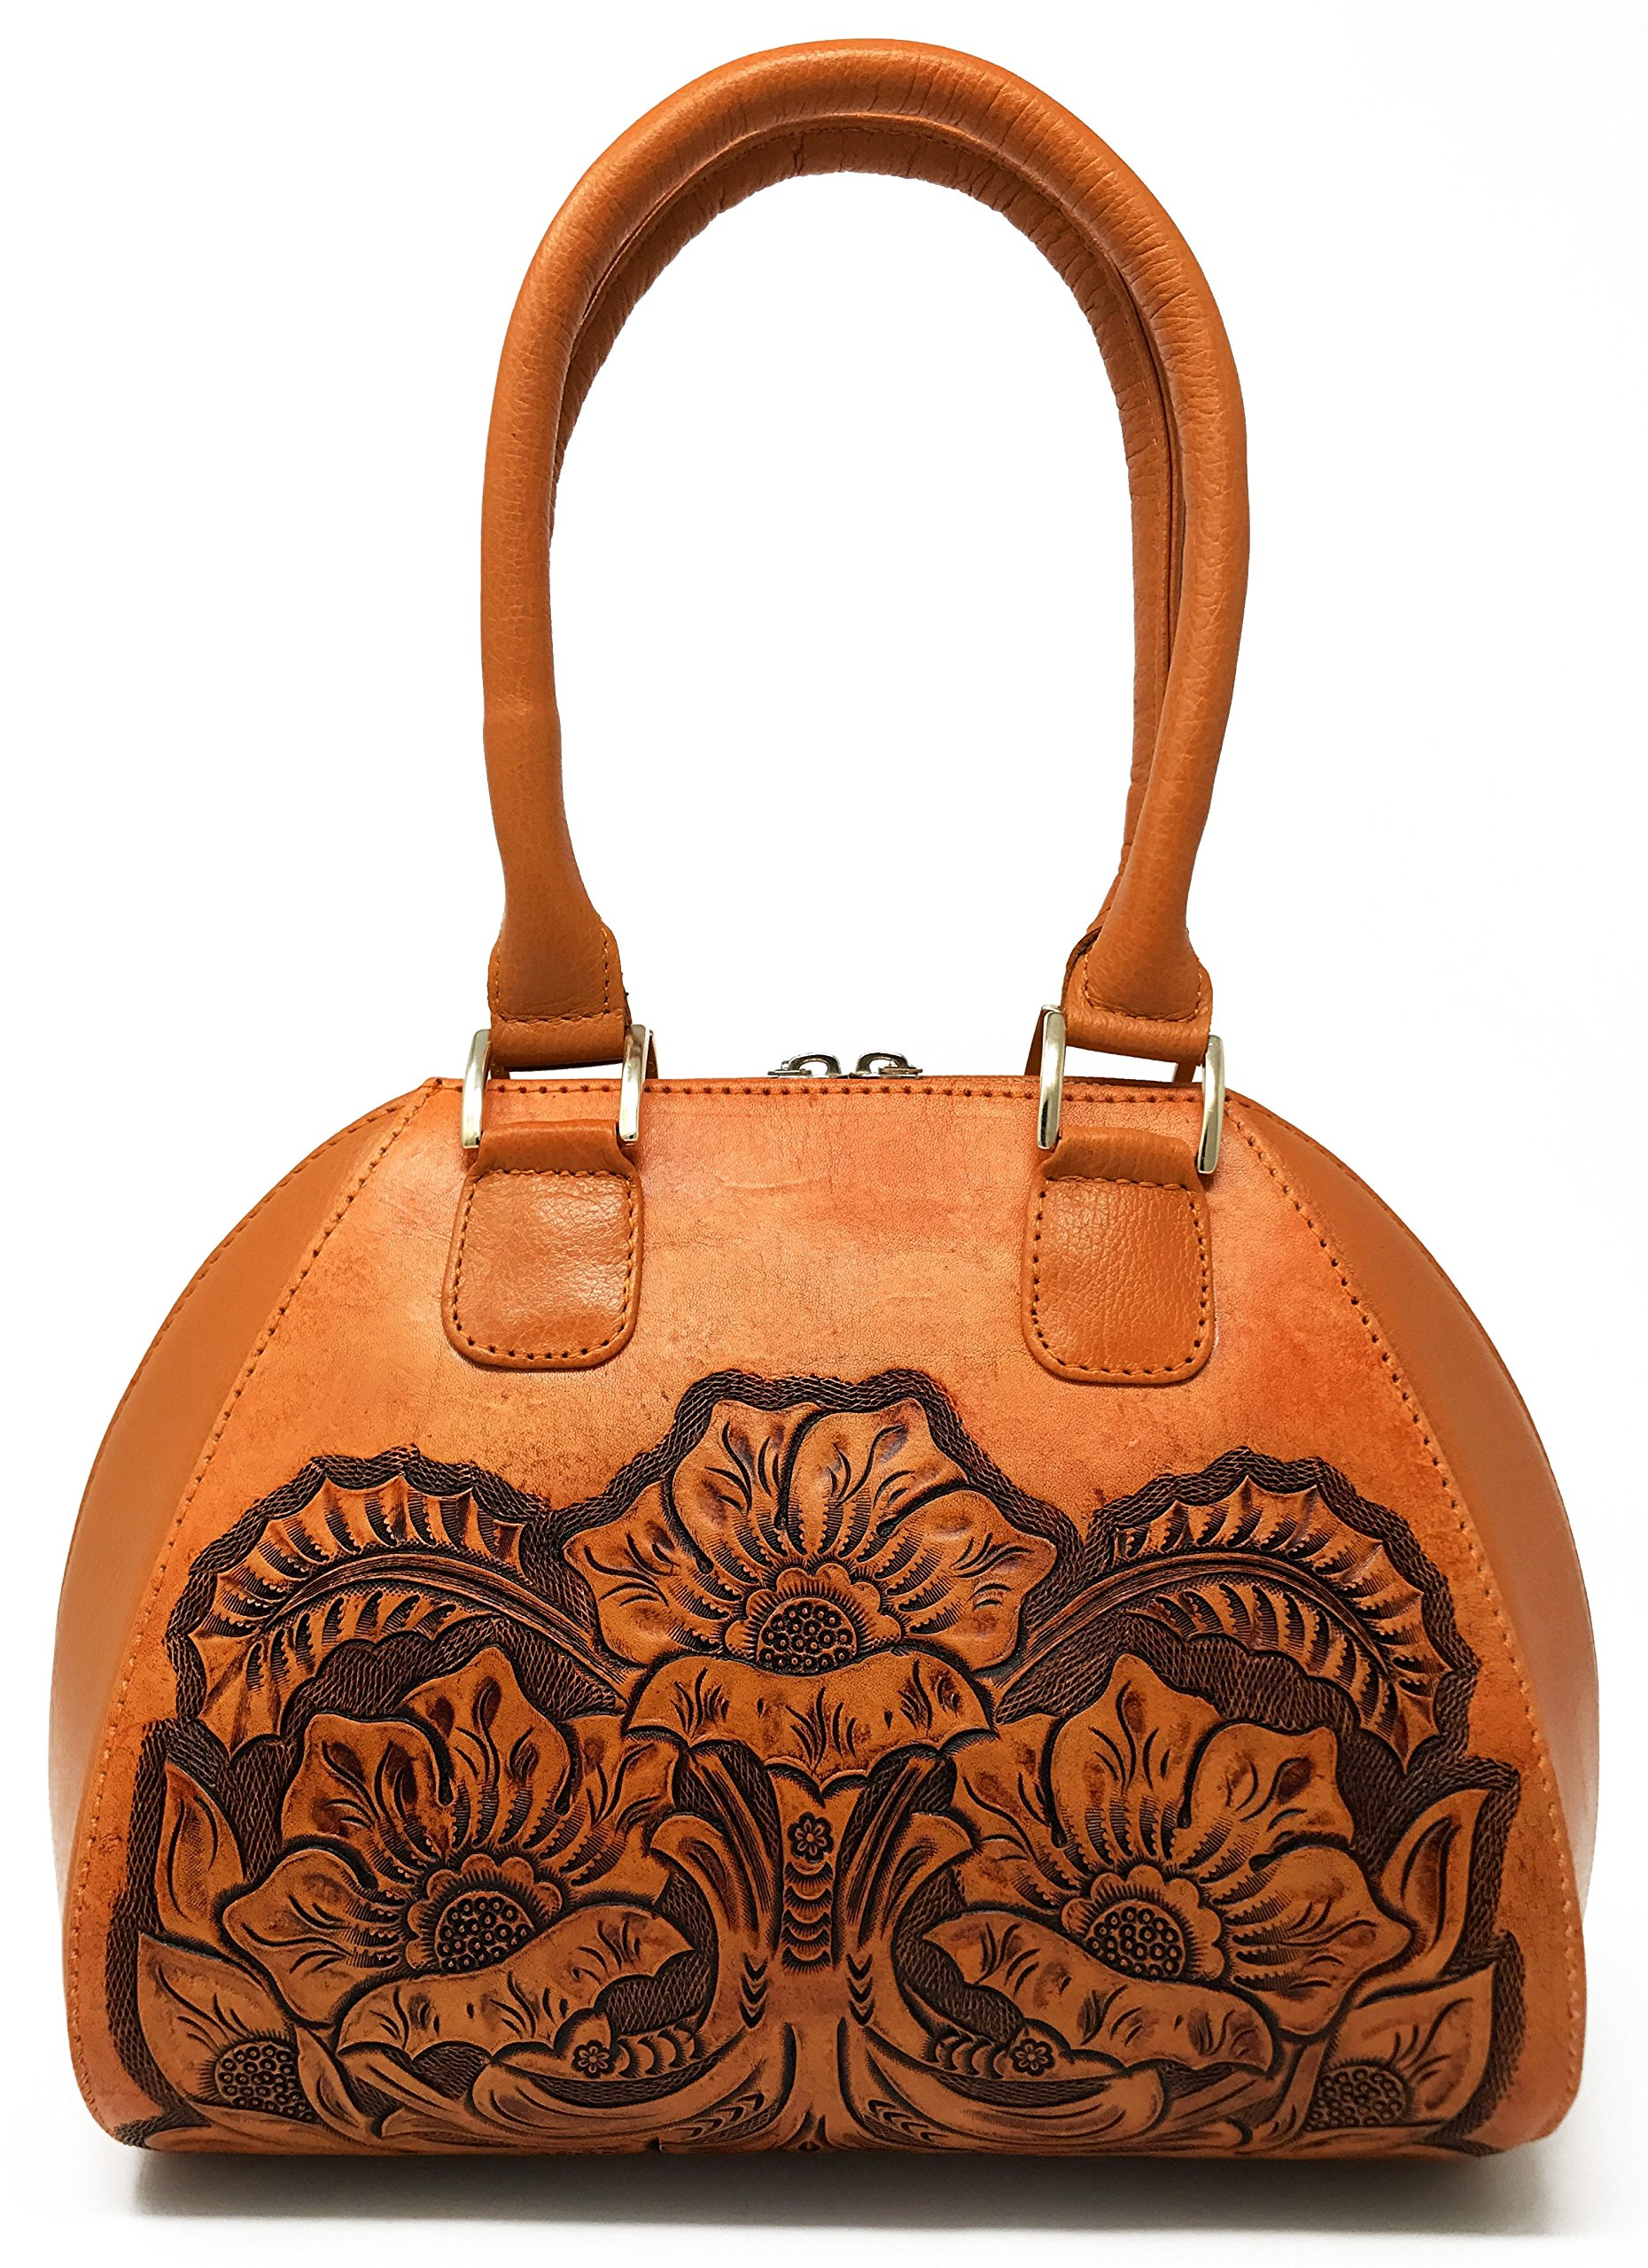 Alexandria Vintage Floral Artisan Leather Handmade Top Handle CrossBody Handbag Designer Gift for Women (Natural)